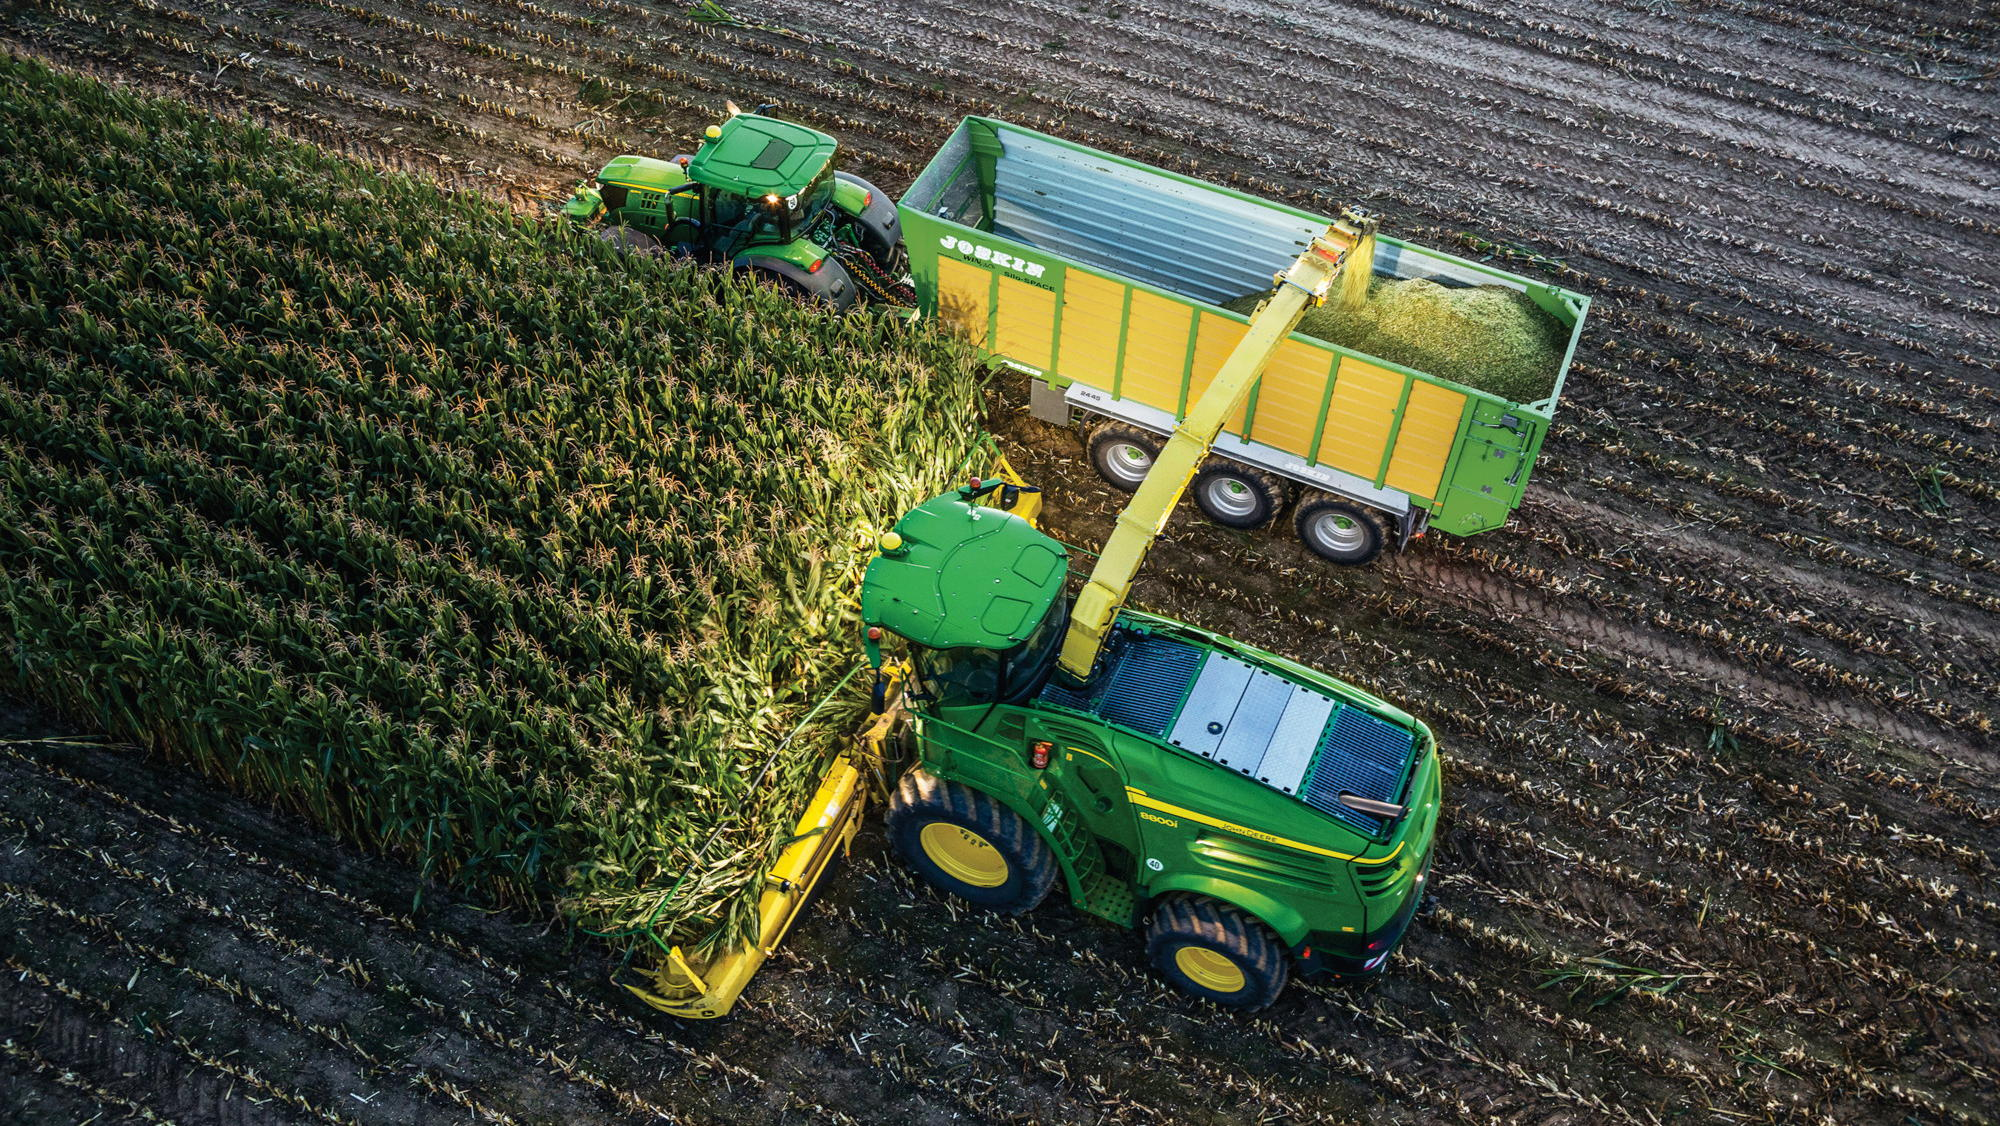 John Deere Machine Sync allows SPFHs to take control of tractors running alongside